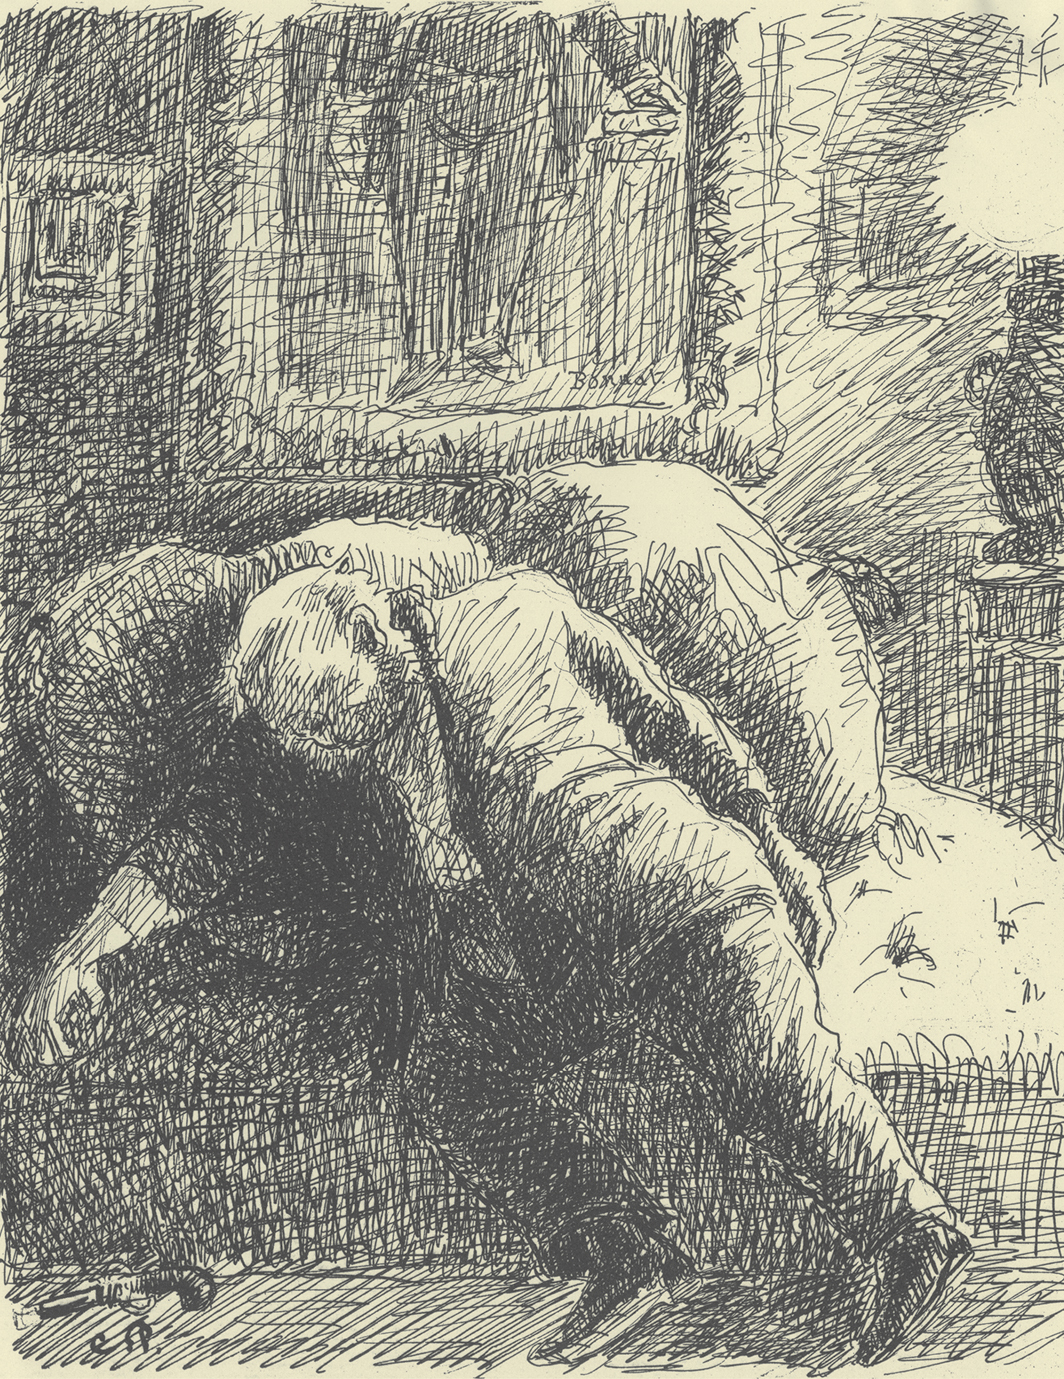 """Camille Pissarro, Le suicide du boursier (The Suicide of a Stockbroker), 1889–90, ink and pencil on paper, 12 1⁄4 × 9 1⁄2"""". From Turpitudes sociales (Social Disgraces), 1889–90."""